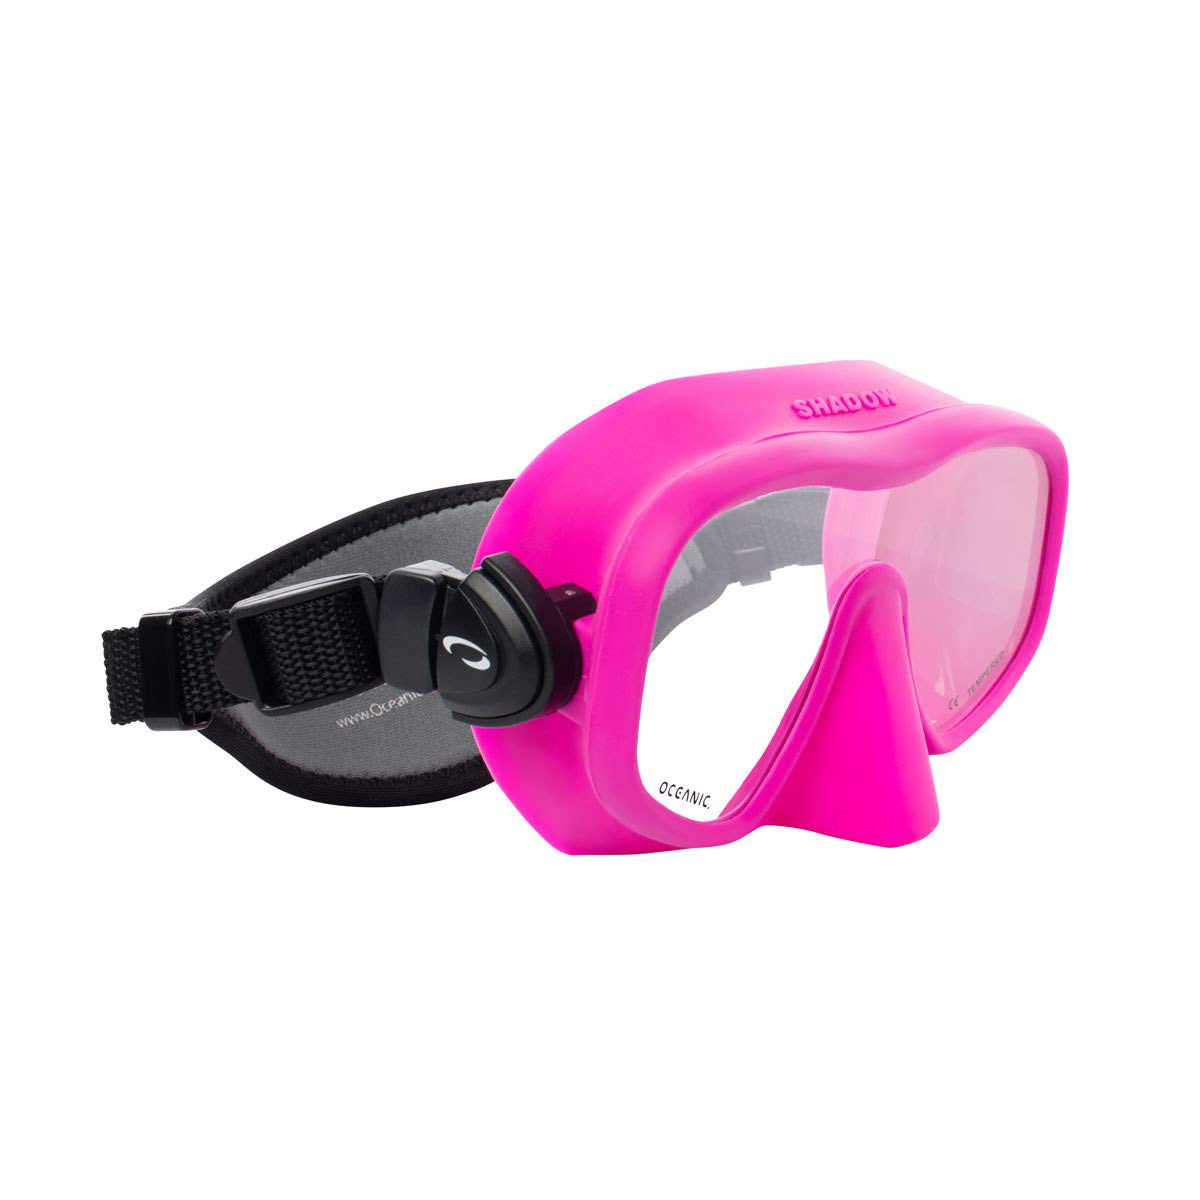 Oceanic Shadow Mask Scuba Snorkeling Diving Freedive